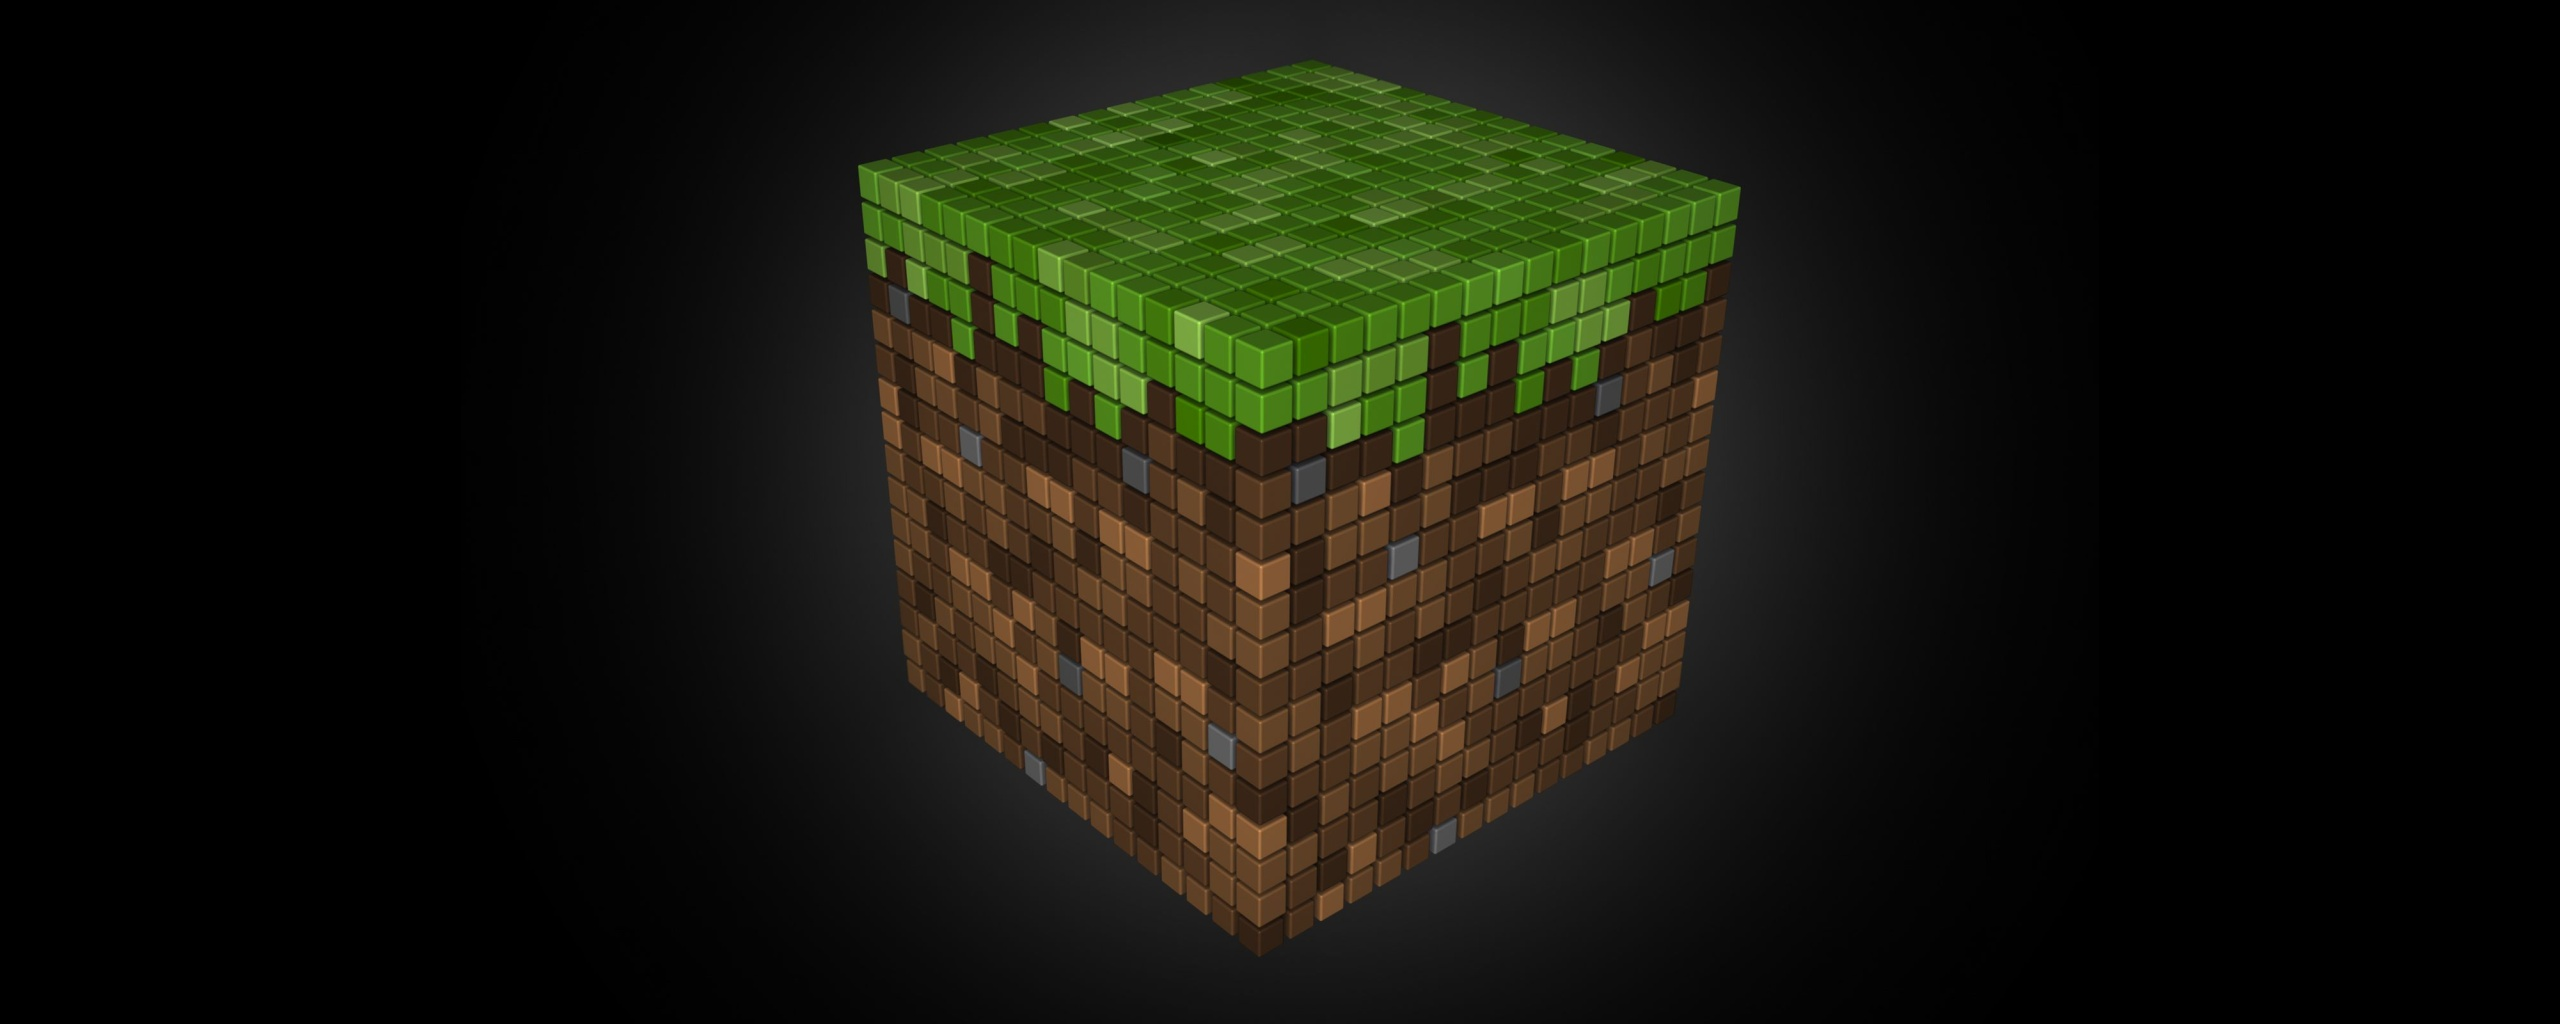 Go Back Images For Minecraft Diamond Block Background 2560x1024